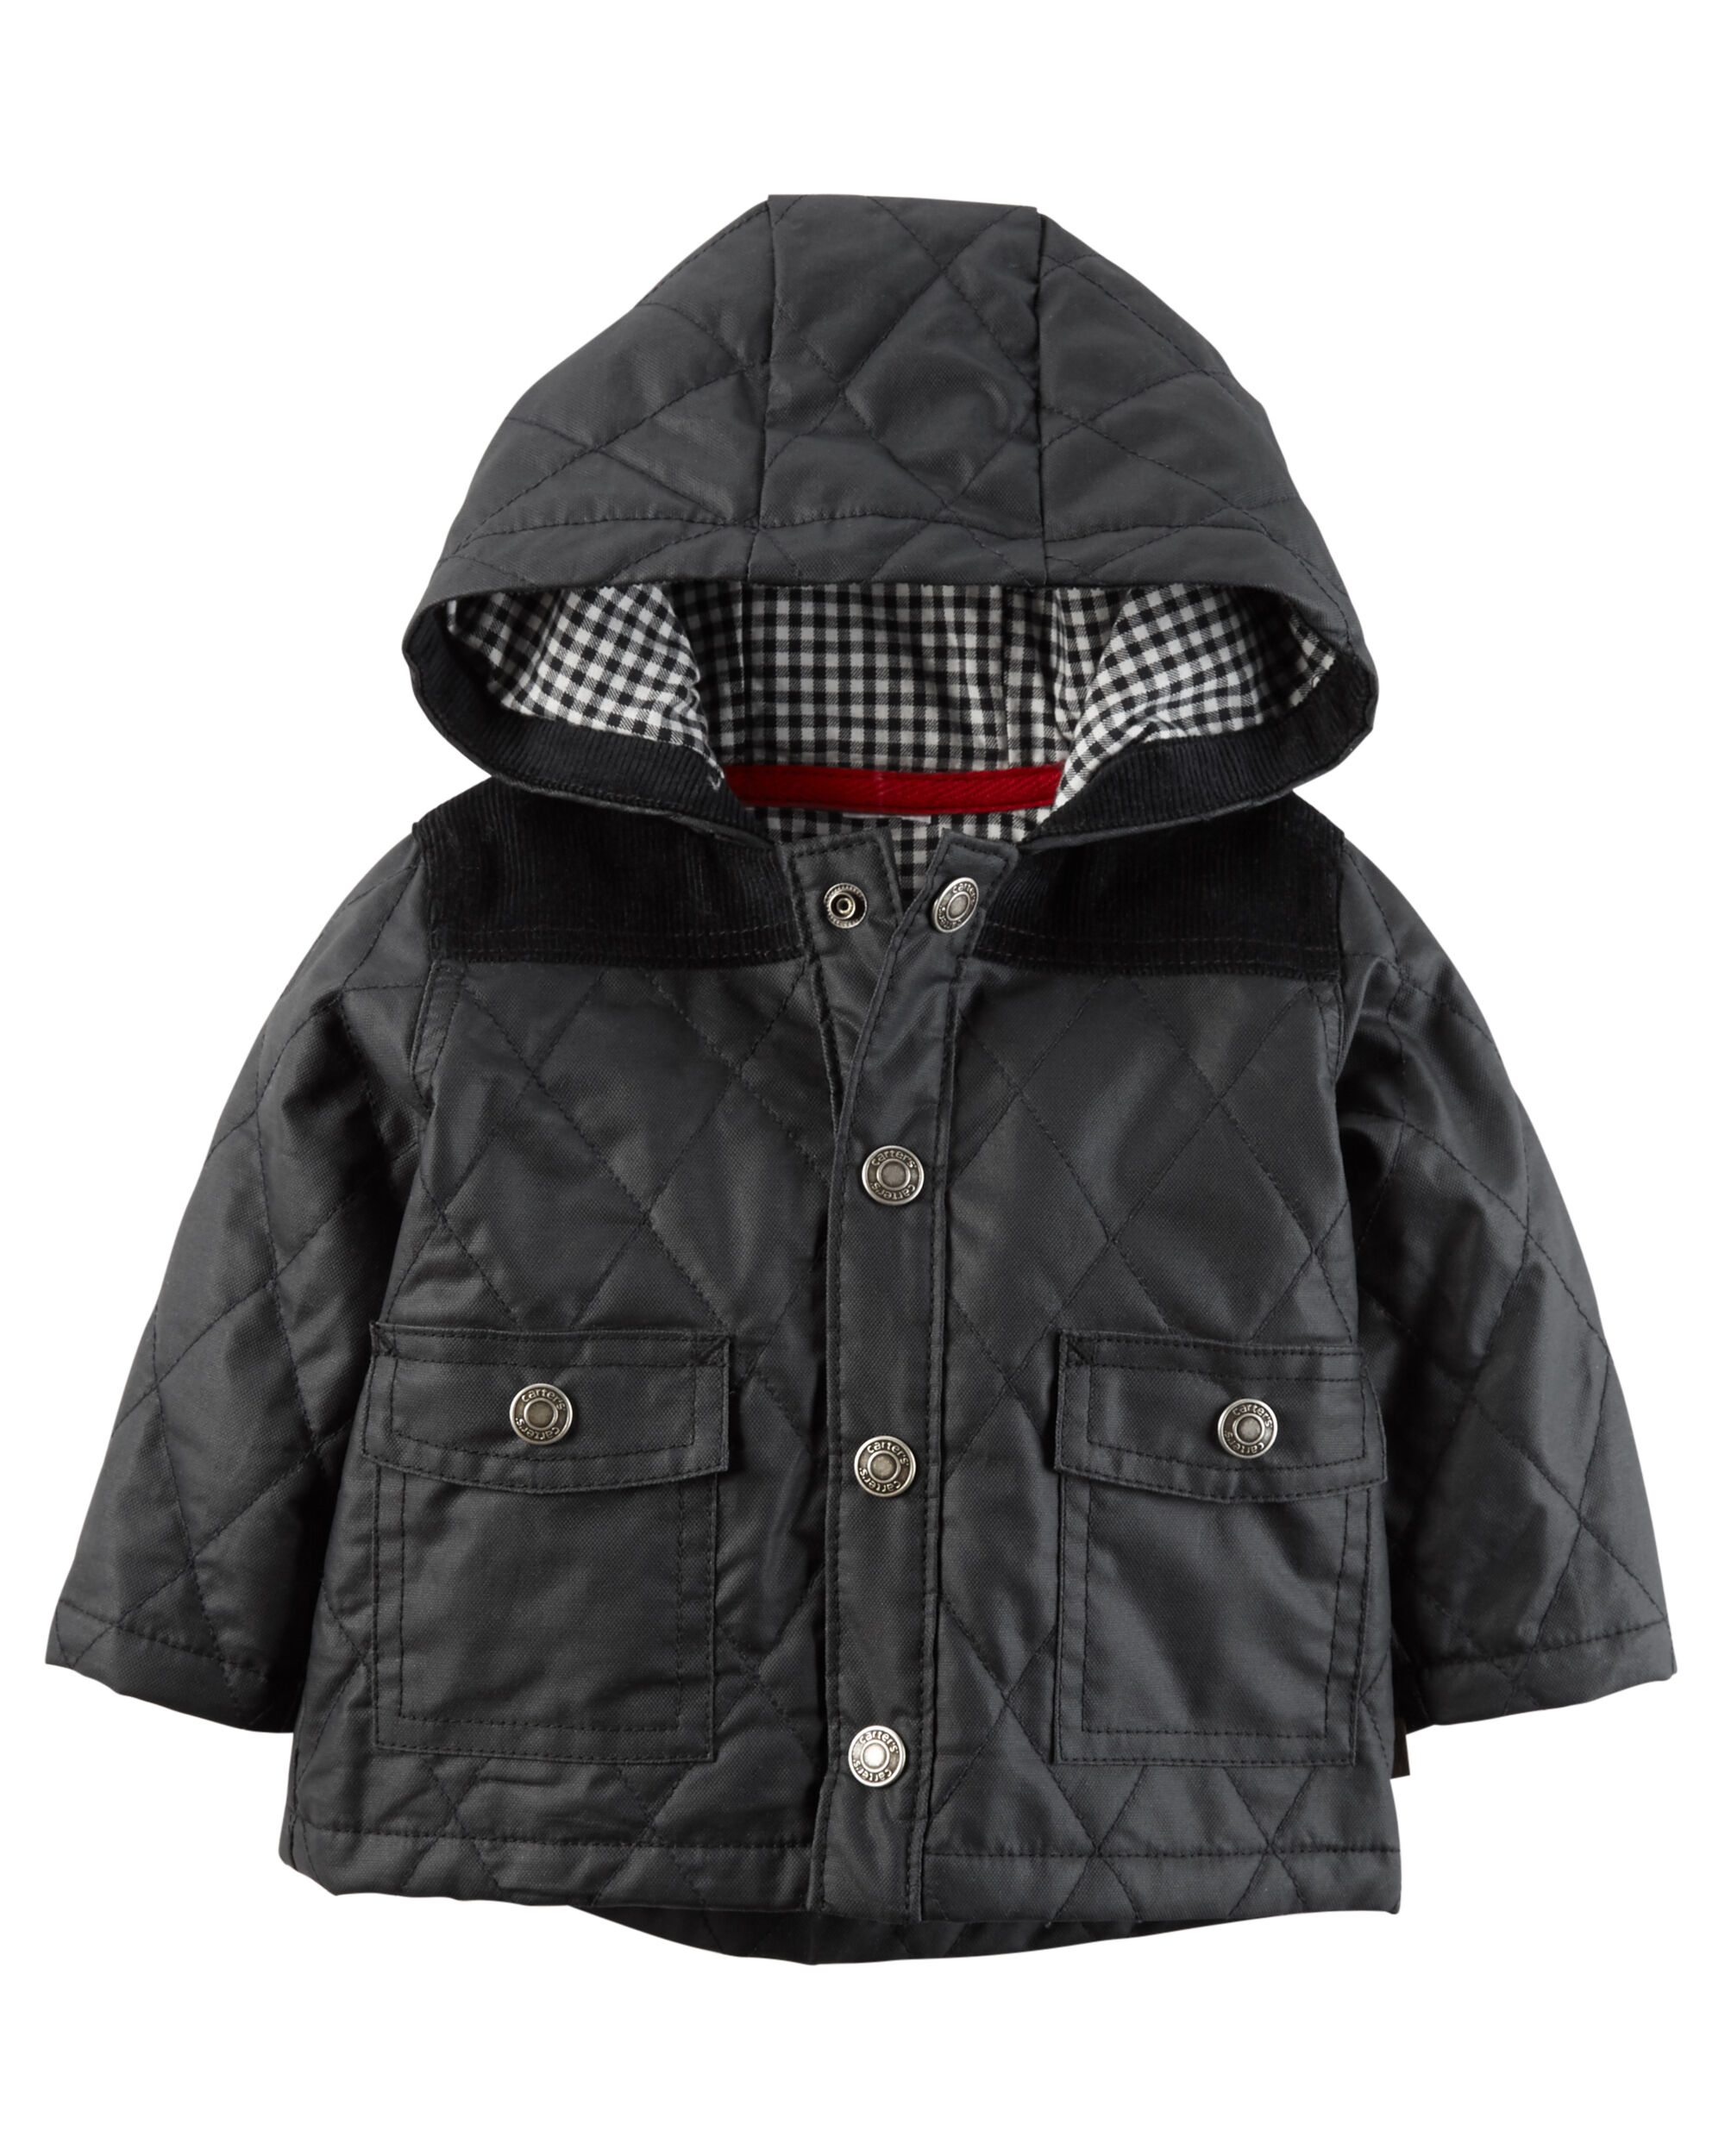 Quilted Cardigan Jacket | Carters.com : quilted cardigan - Adamdwight.com